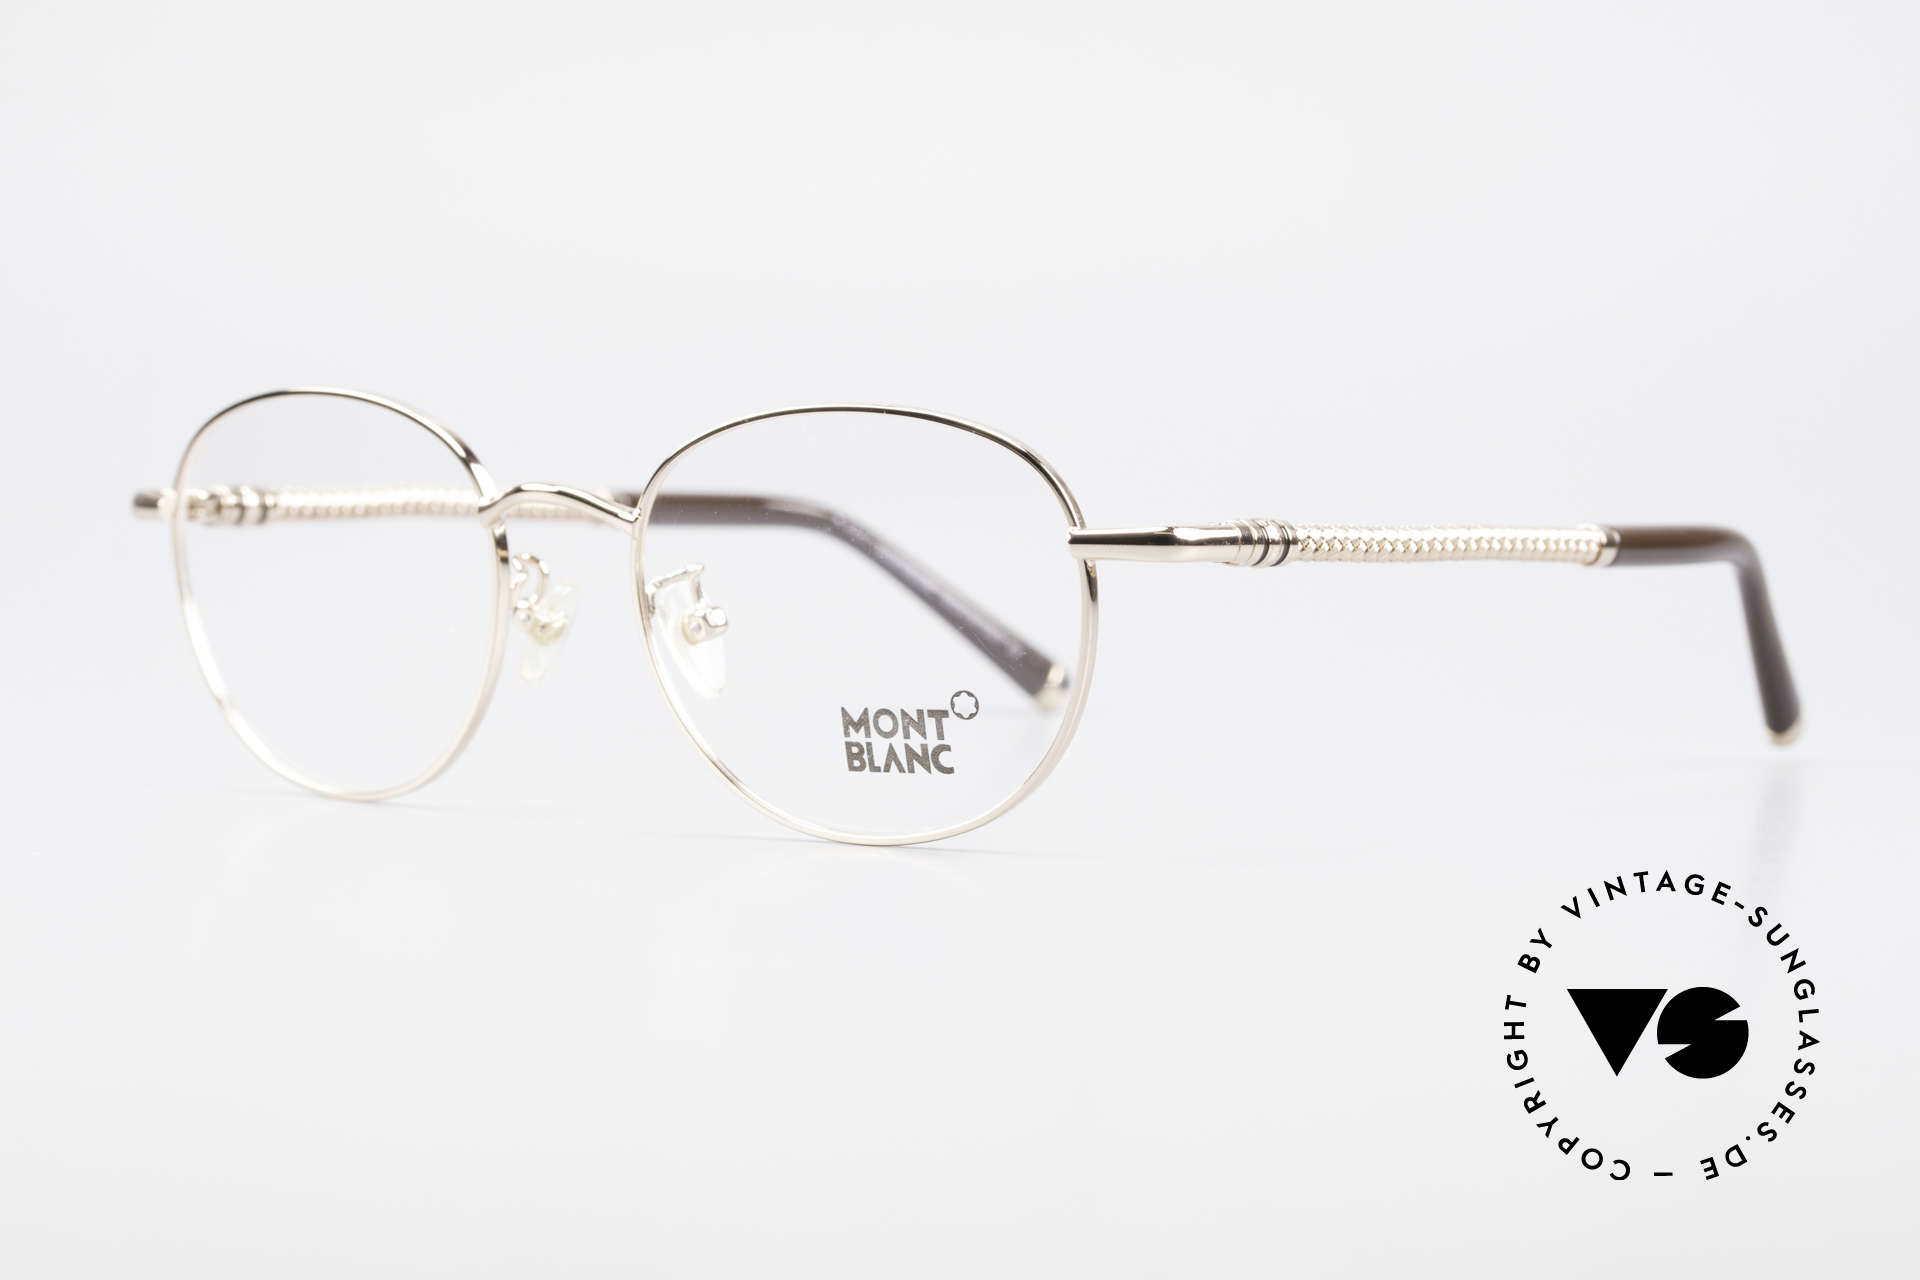 Montblanc MB392 Luxury Panto Frame Rose Gold, metal frame in ROSÉ-GOLD (the finish looks warmer), Made for Men and Women